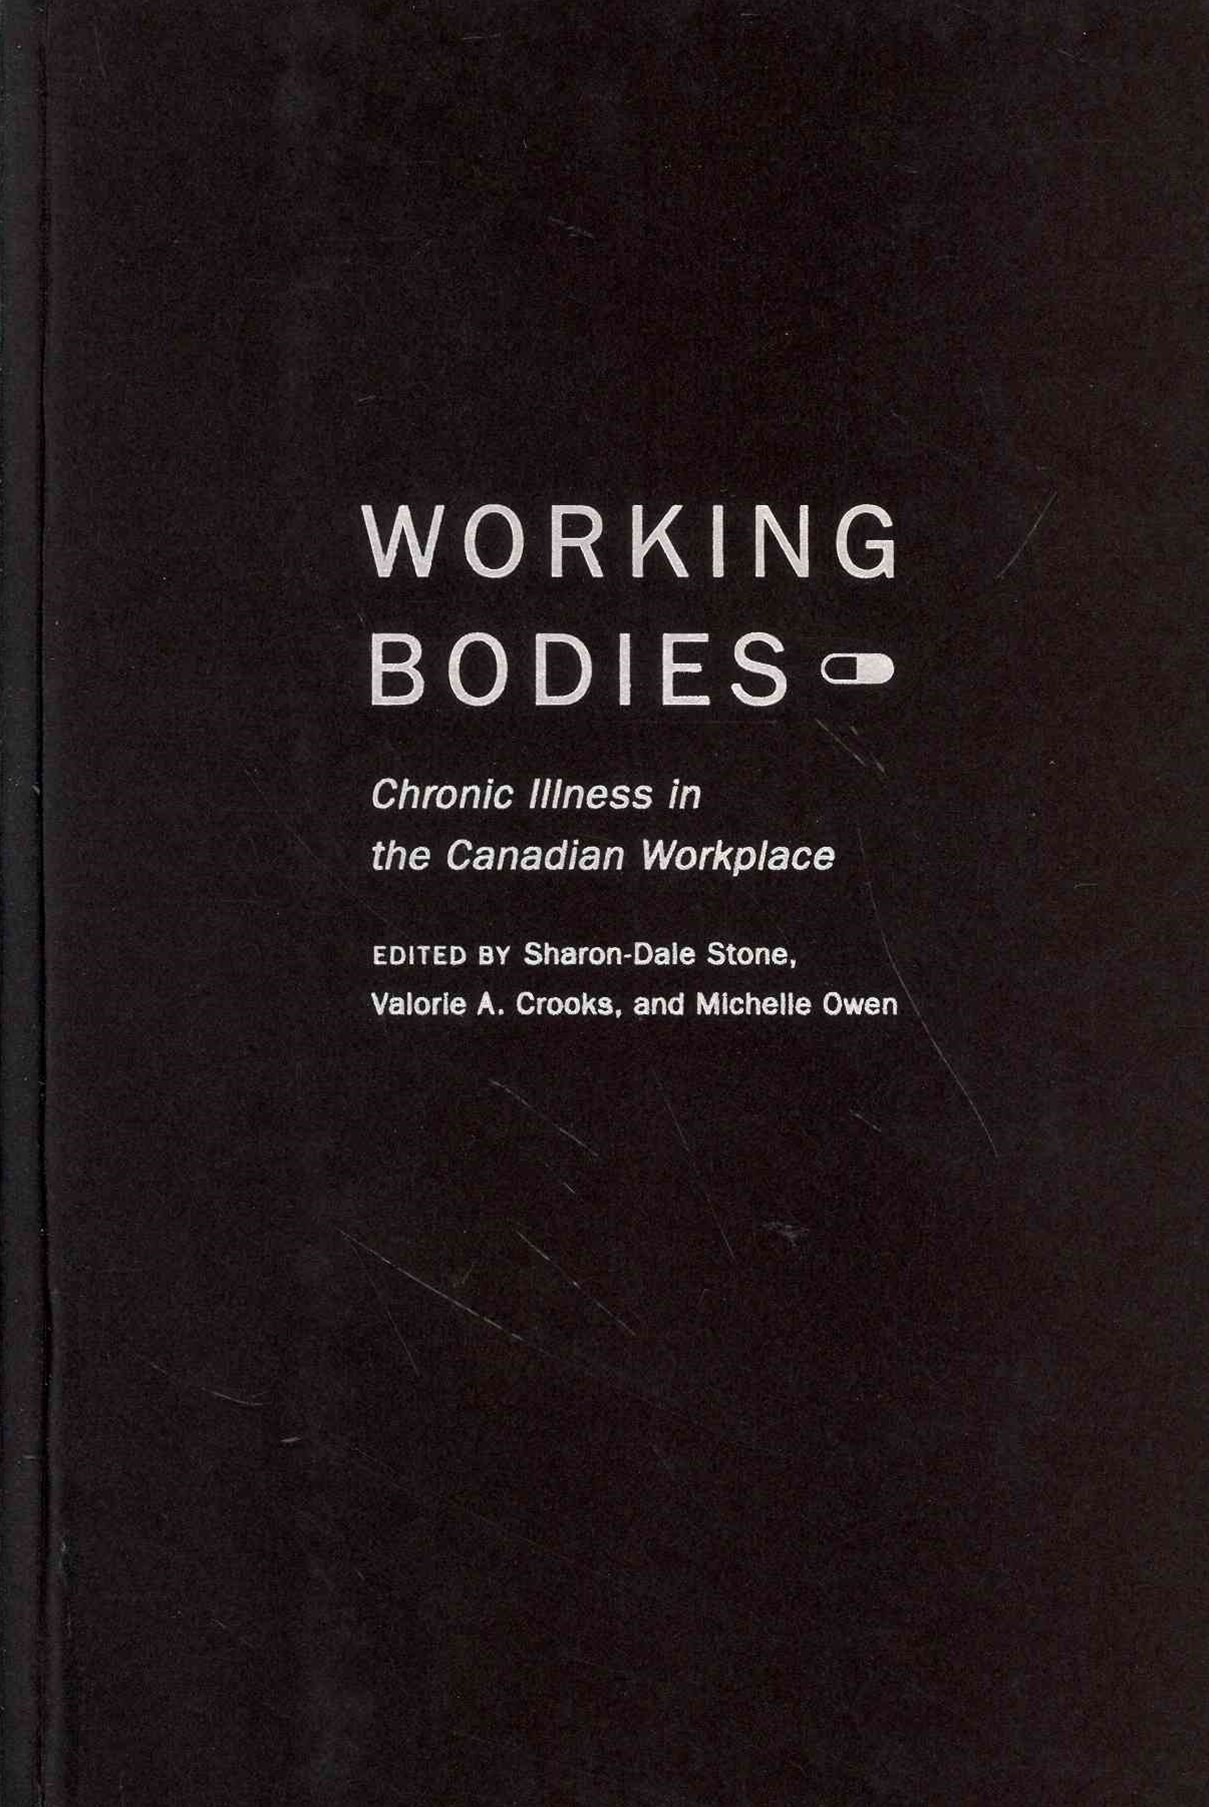 Working Bodies